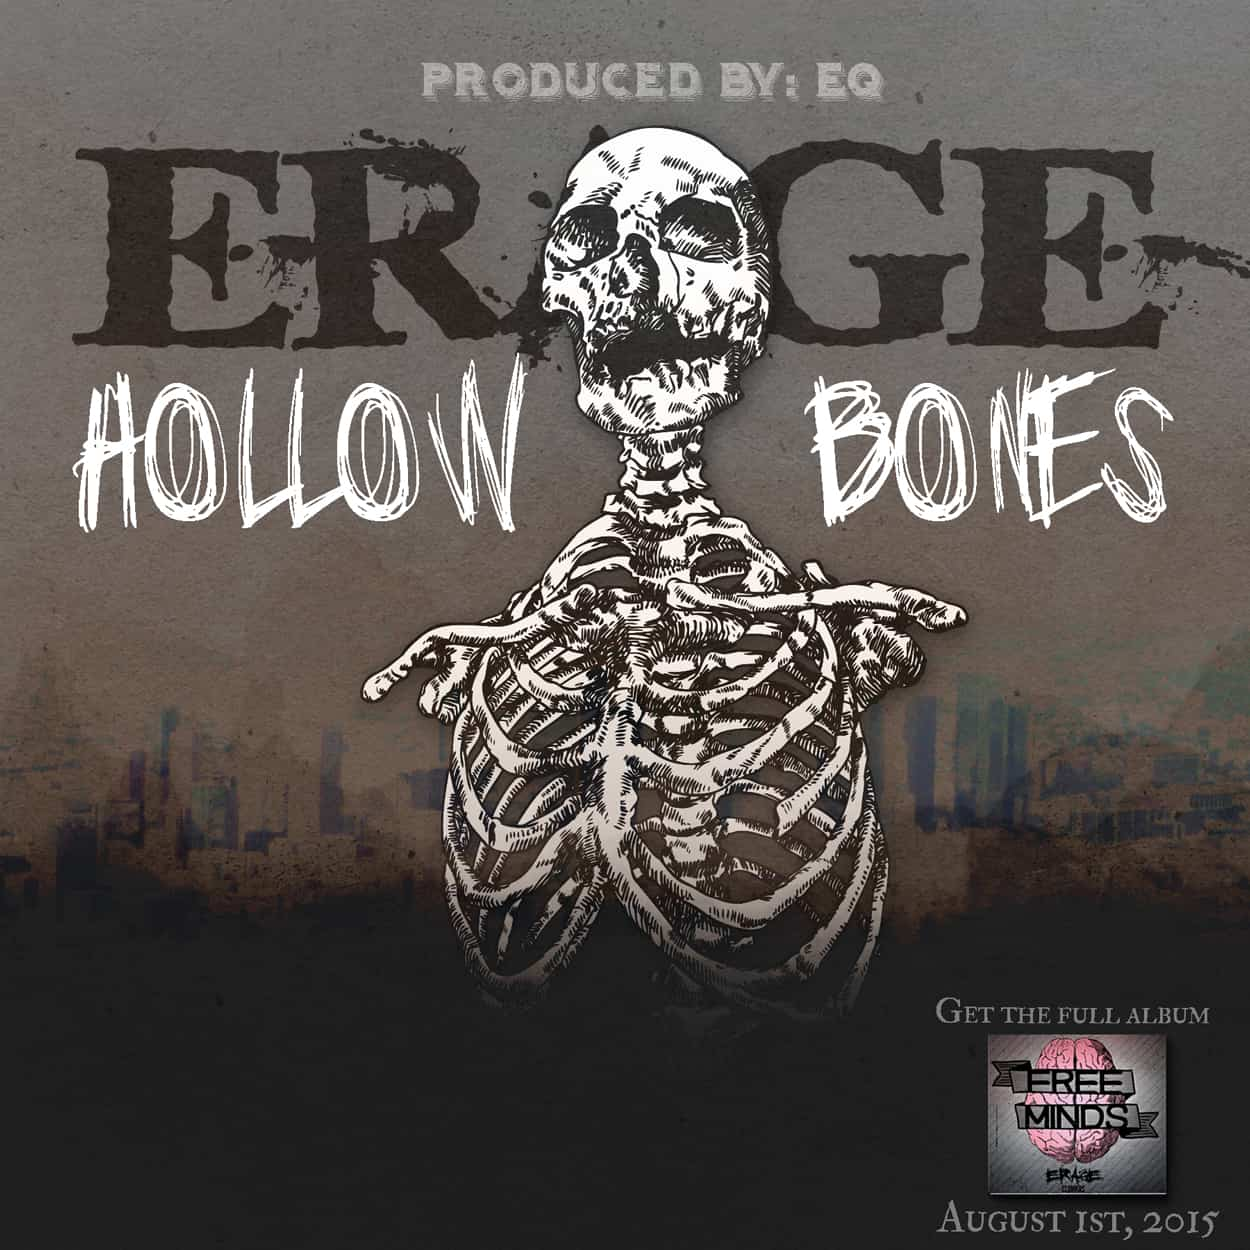 erage -hollow bones - album art design